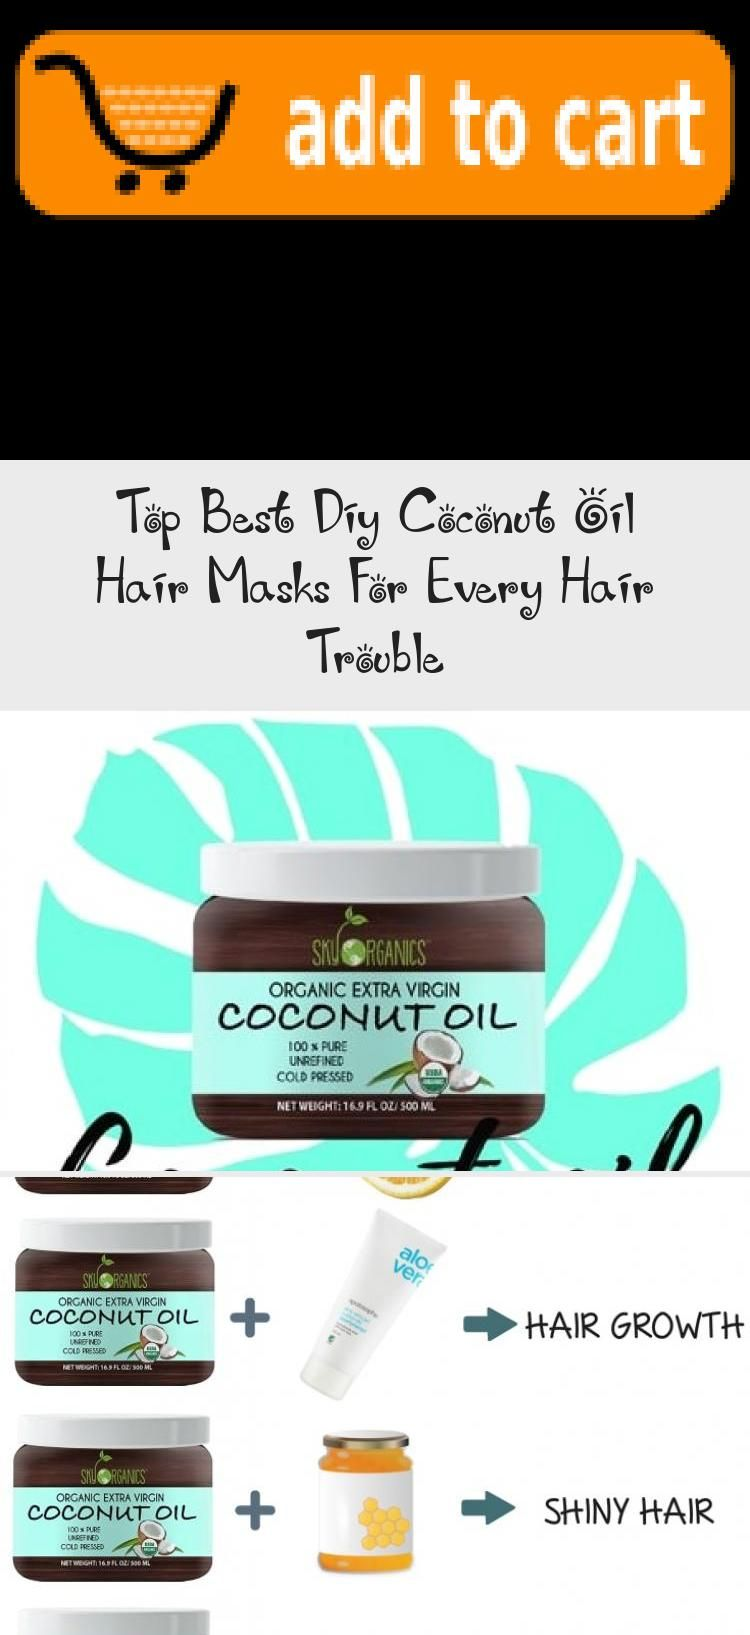 keyword[1]} and Your hair needs its natural oils to stay healthy. We found 5 of the best coconut oil hair masks which can help you to solve almost all your hair problems. #lhealthyandwell #CoconutOil #HairMasks #hairgrowthVitamins #InversionMethodhairgrowth #hairgrowthSerum #ManeNTailhairgrowth #hairgrowthVideos